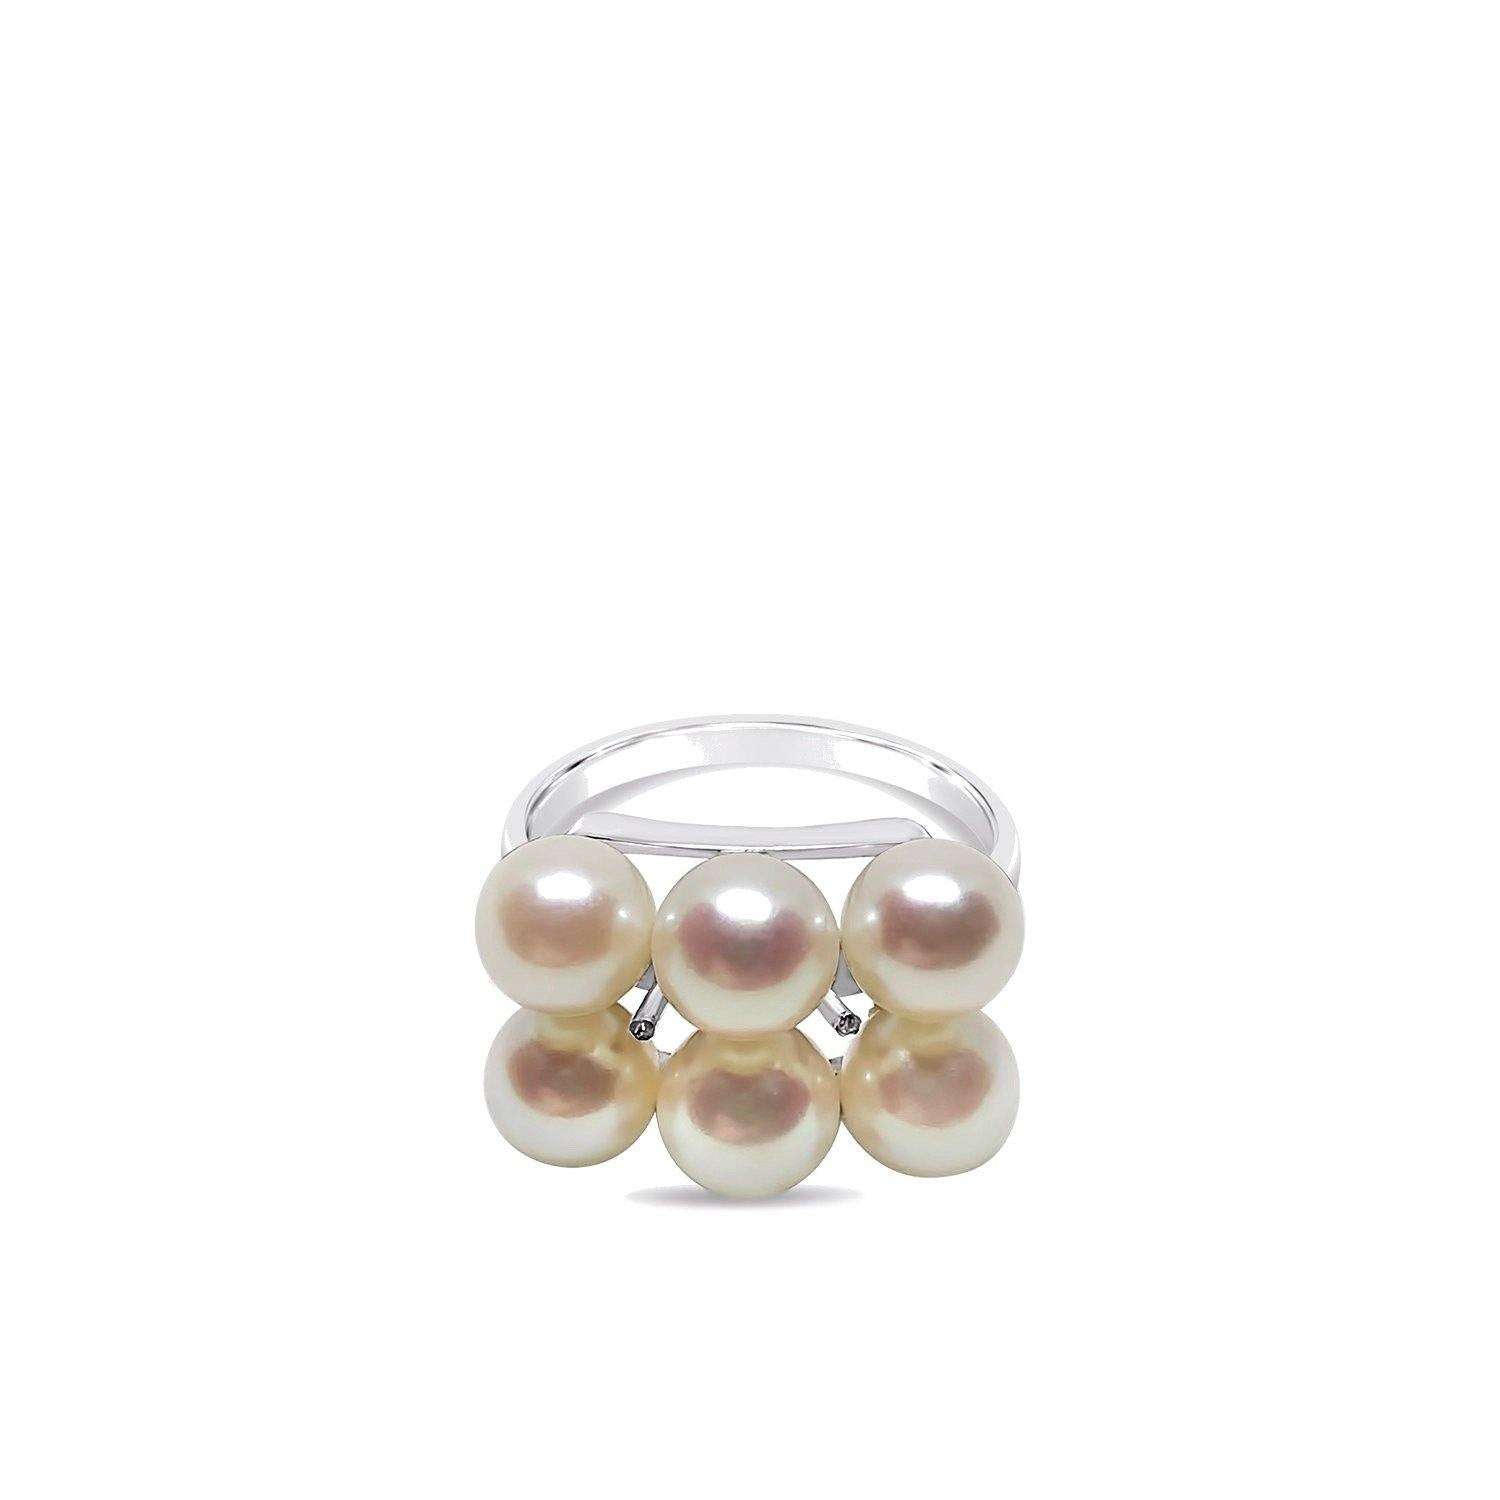 Double Row Japanese Saltwater Akoya Cultured Pearl Ring- Sterling Silver